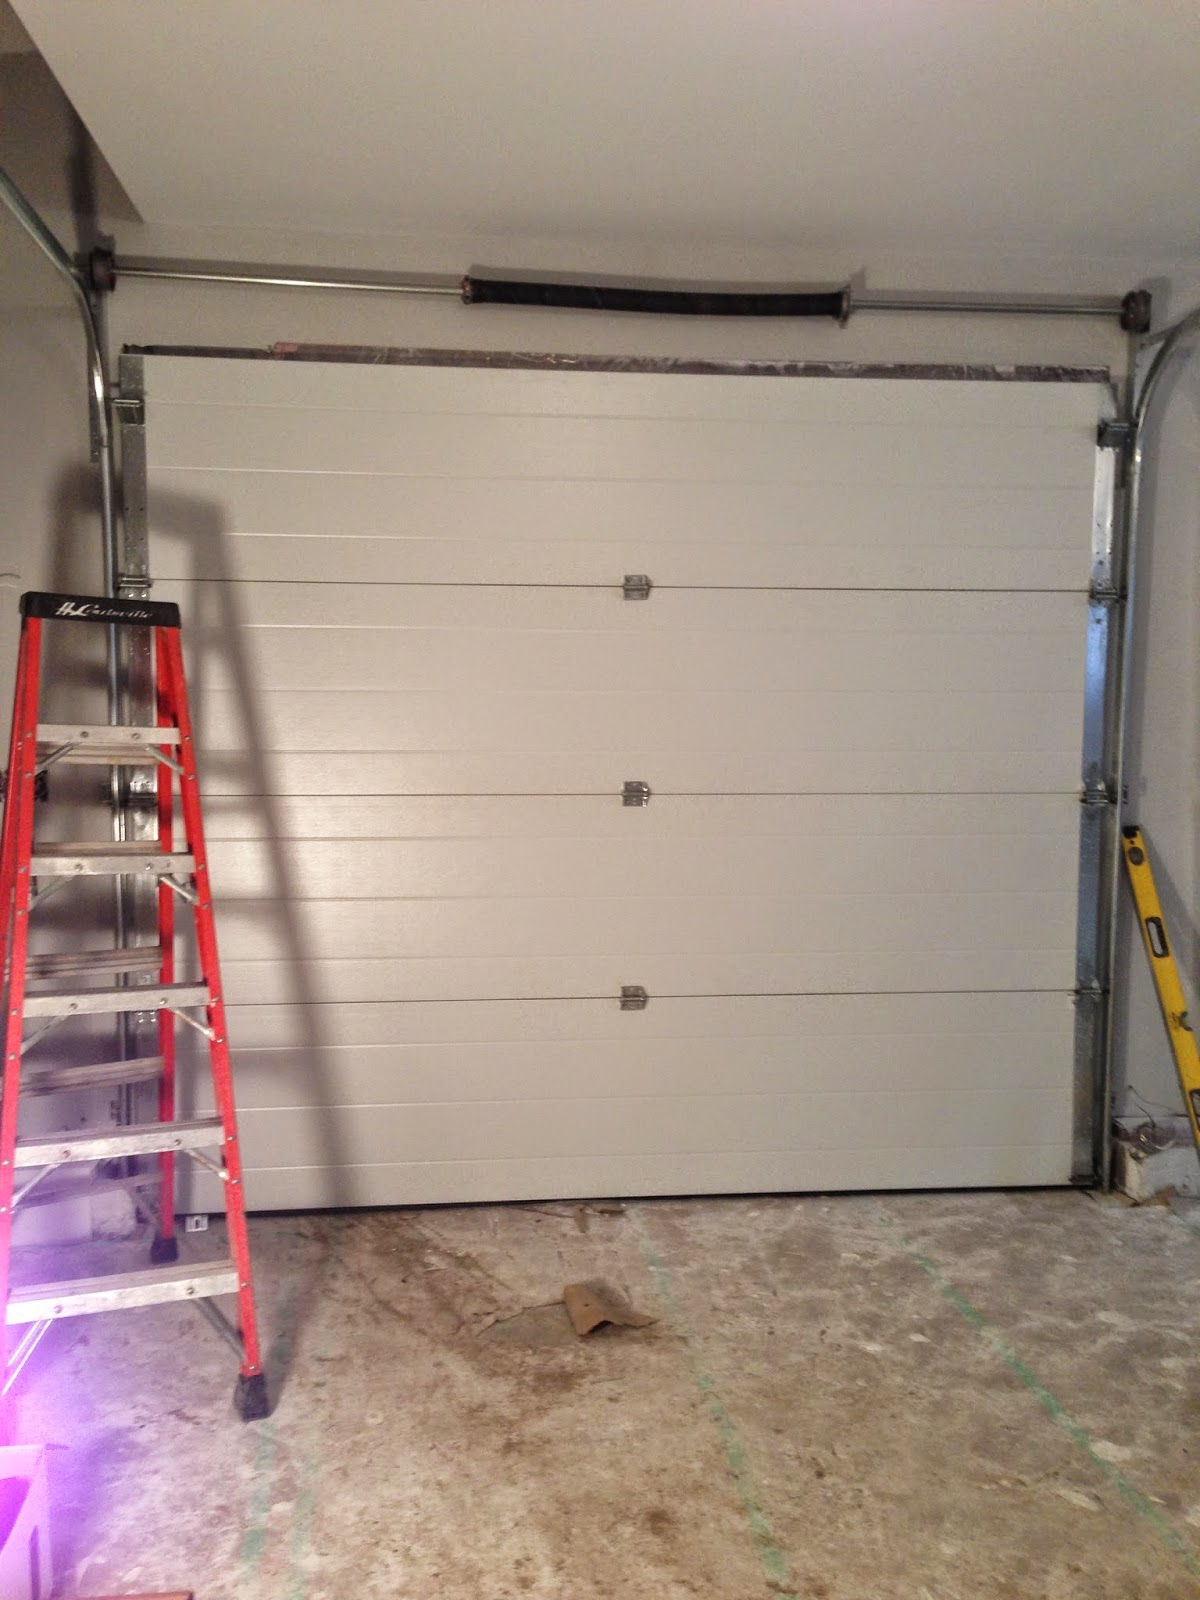 1600 #A3282A Mr Garage Guy Came Today And Installed The Garage Doors picture/photo Everything Garage Doors 37291200